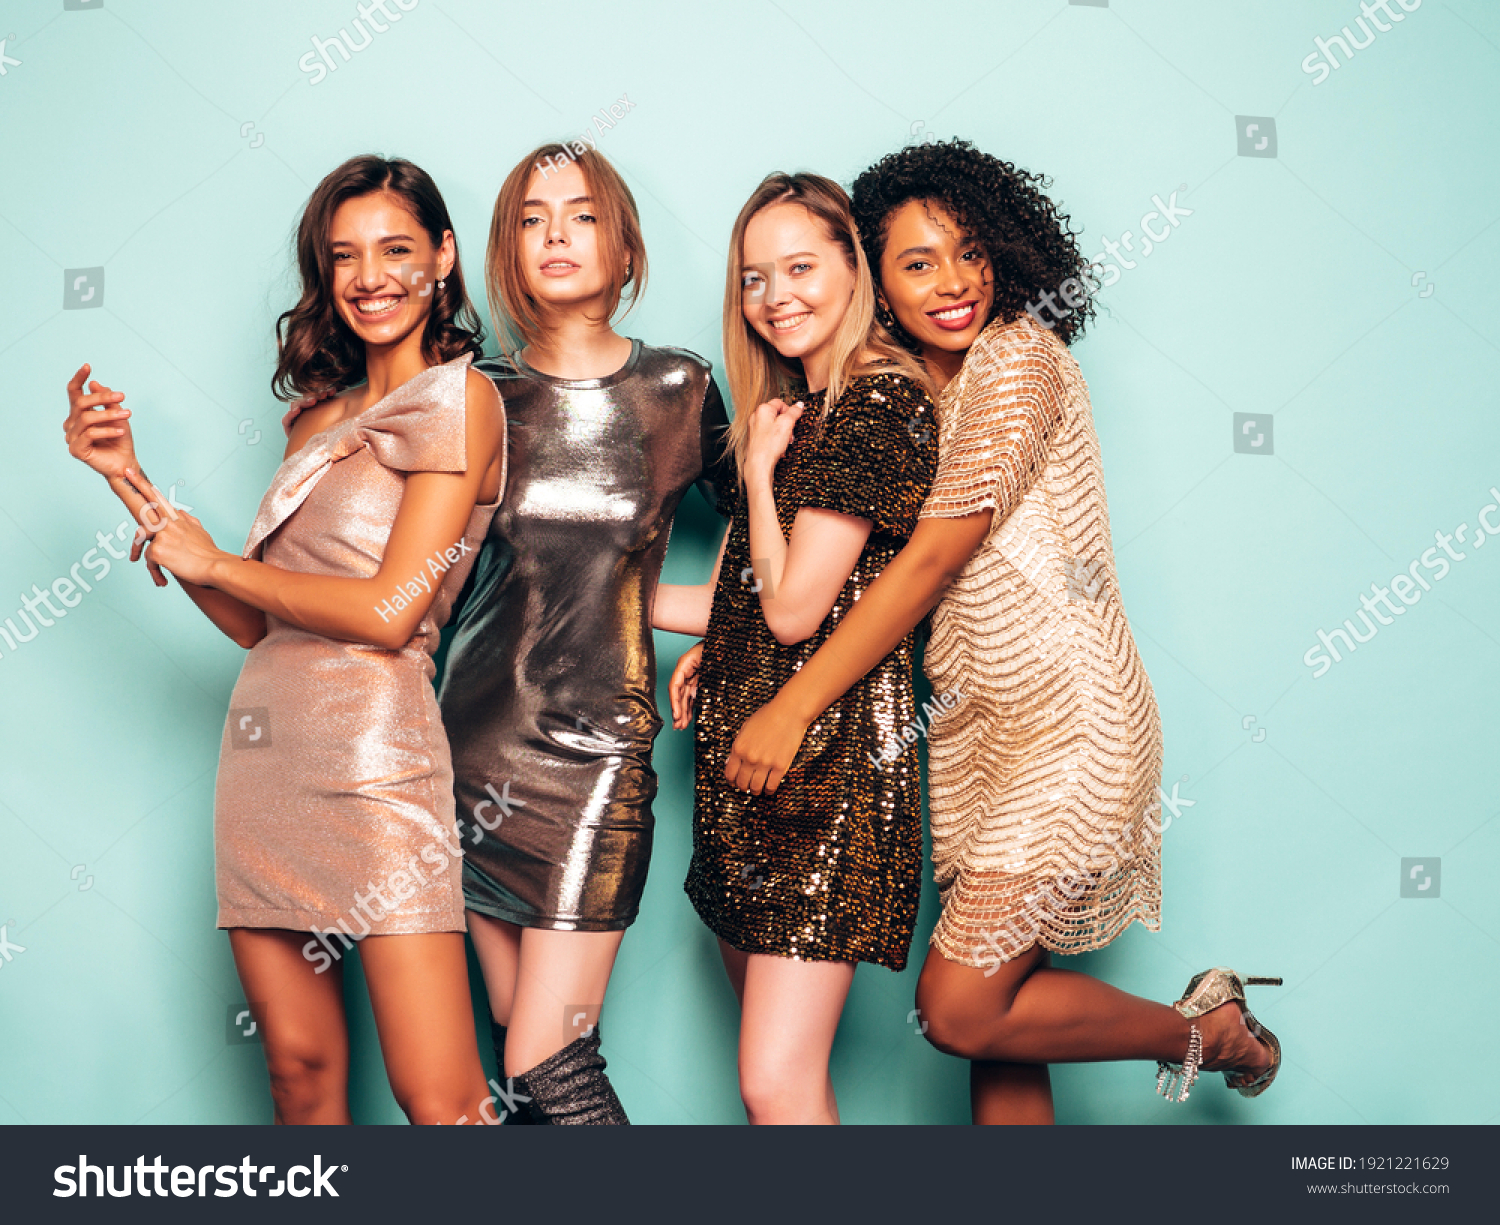 Four young international beautiful brunette women in trendy summer  shiny dress.Sexy smiling carefree female posing near blue wall in studio.Fashionable models with bright evening makeup #1921221629